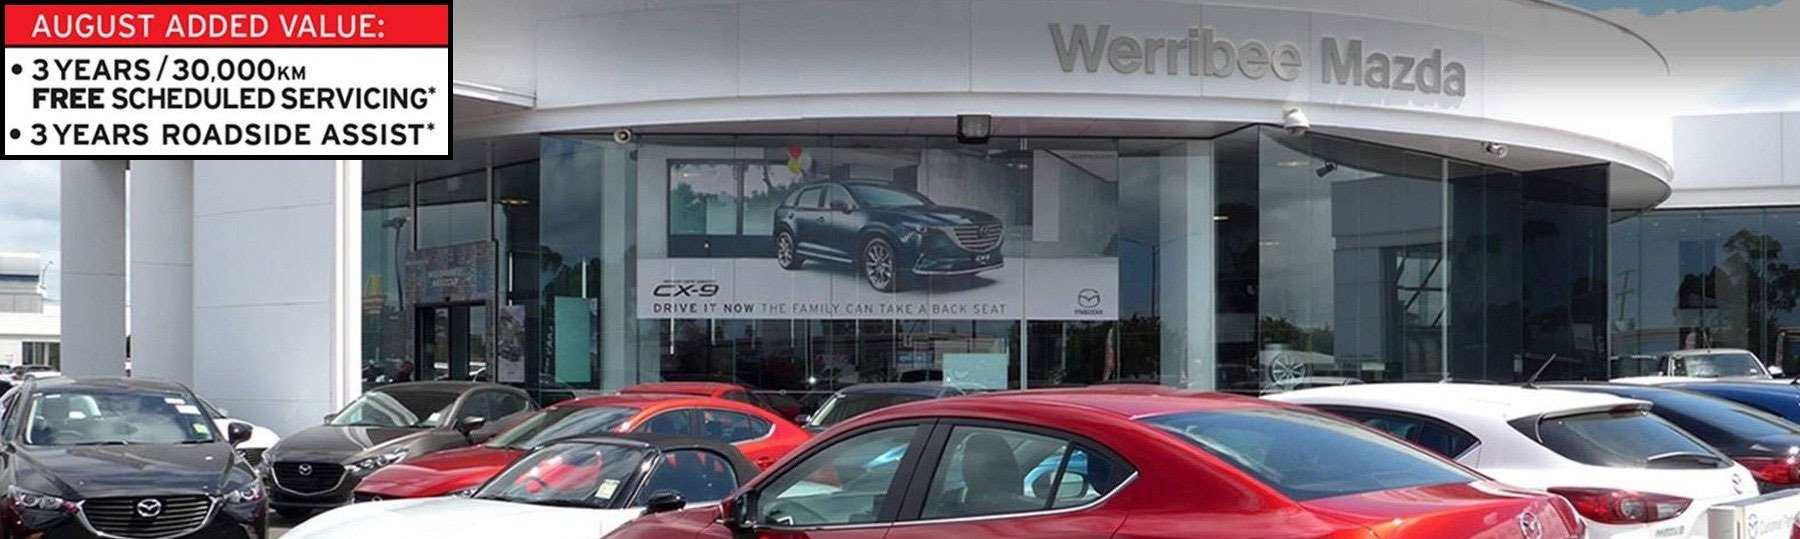 Werribee Mazda August Offers